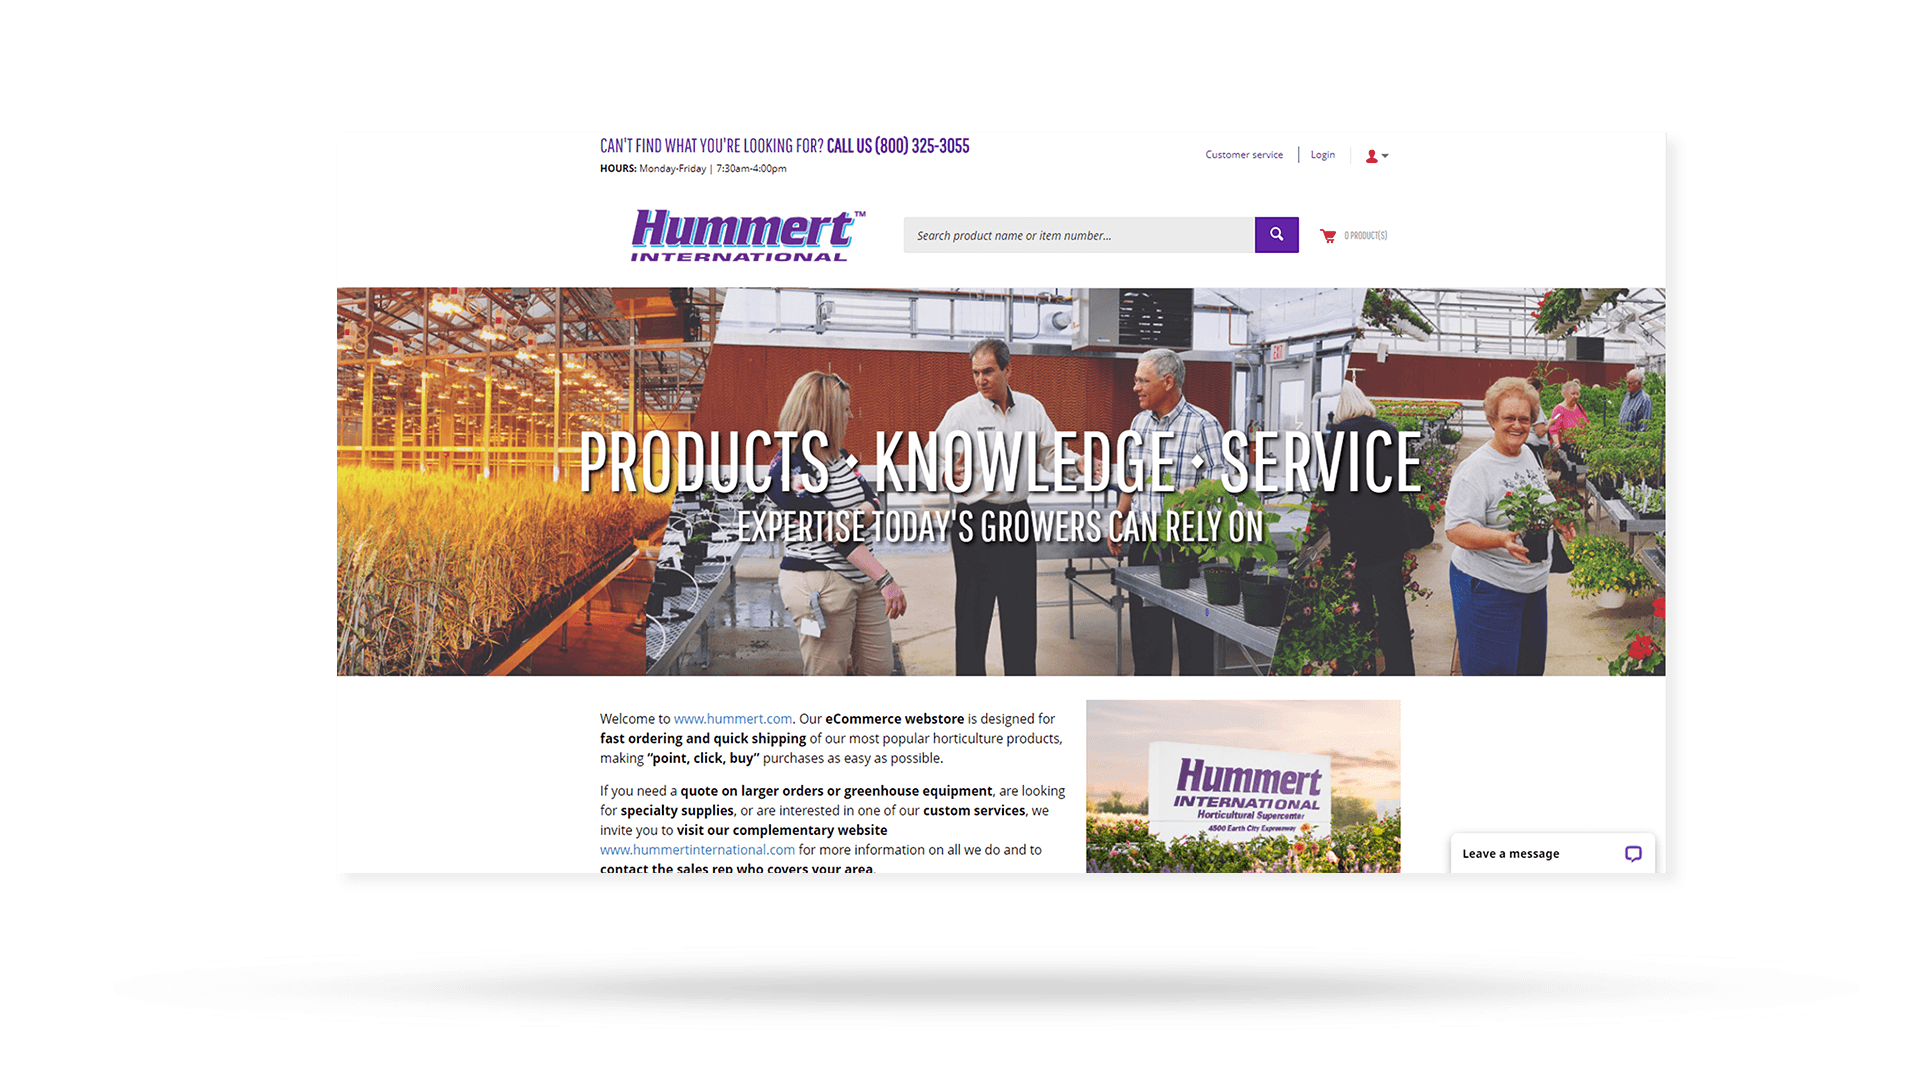 Hummert International Web